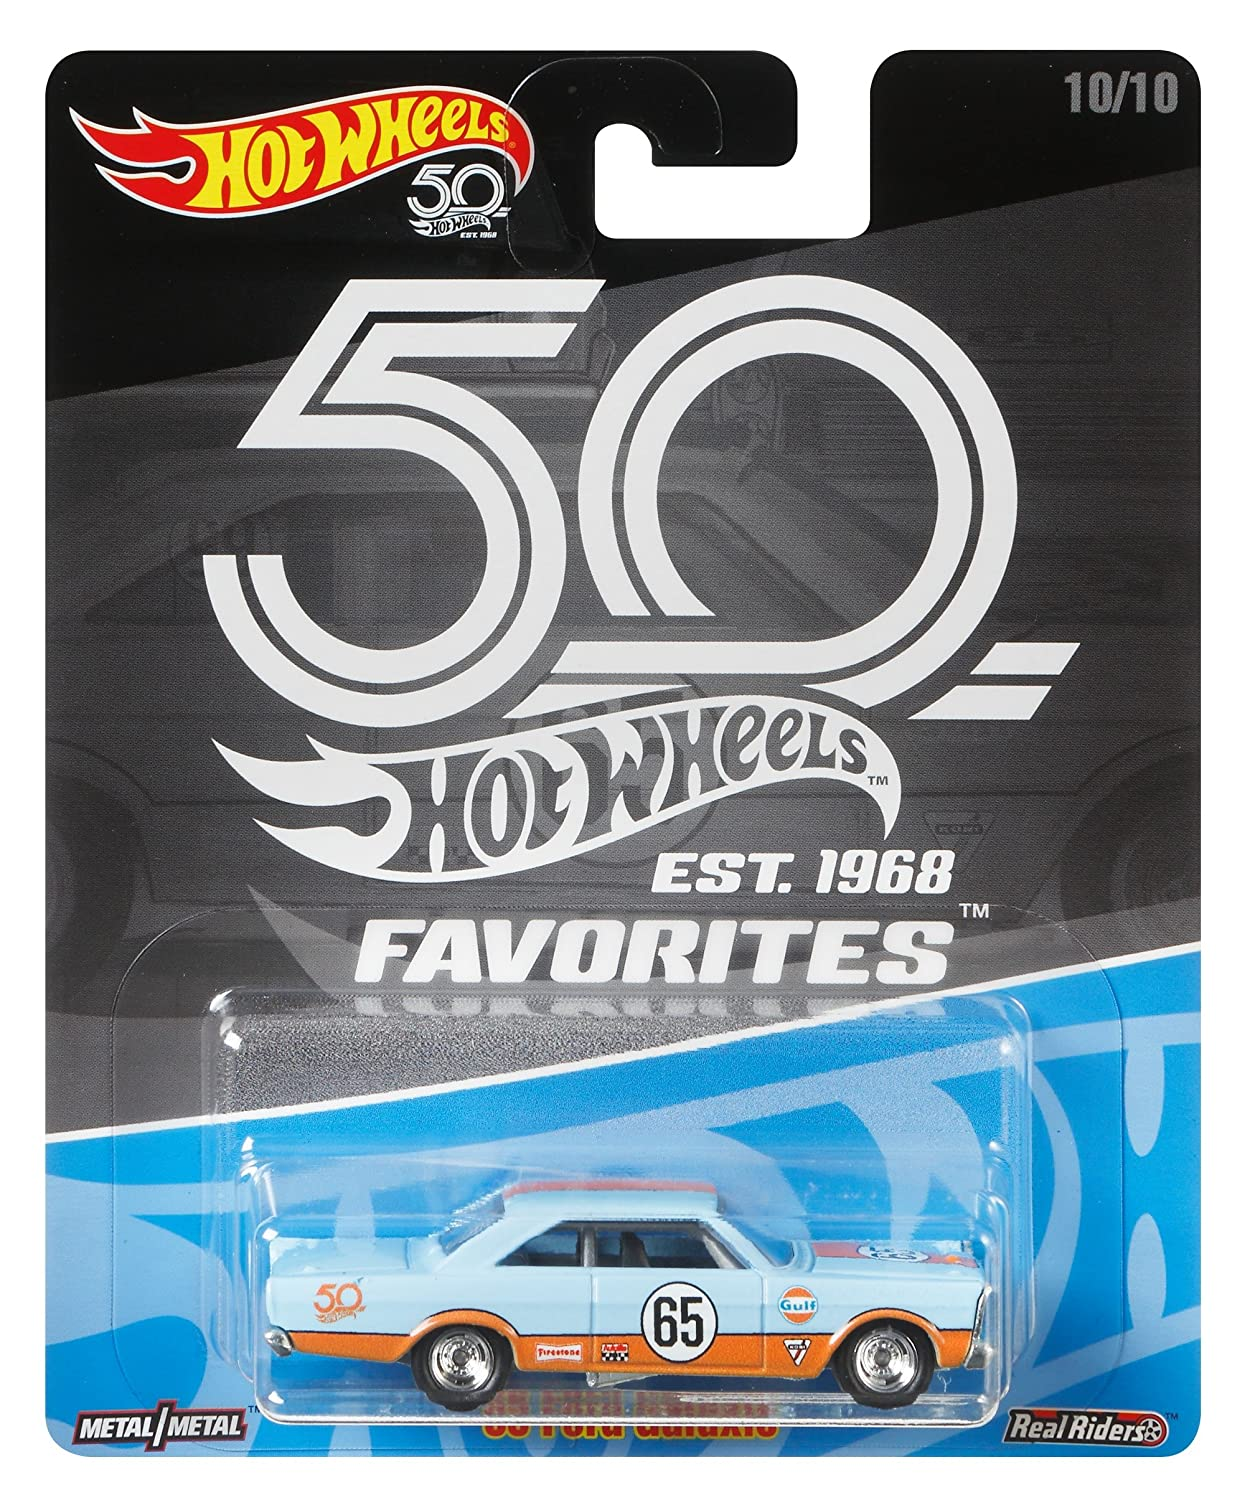 Hot Wheels 50th Anniversary Favs 65 Galaxie Mattel FLF45